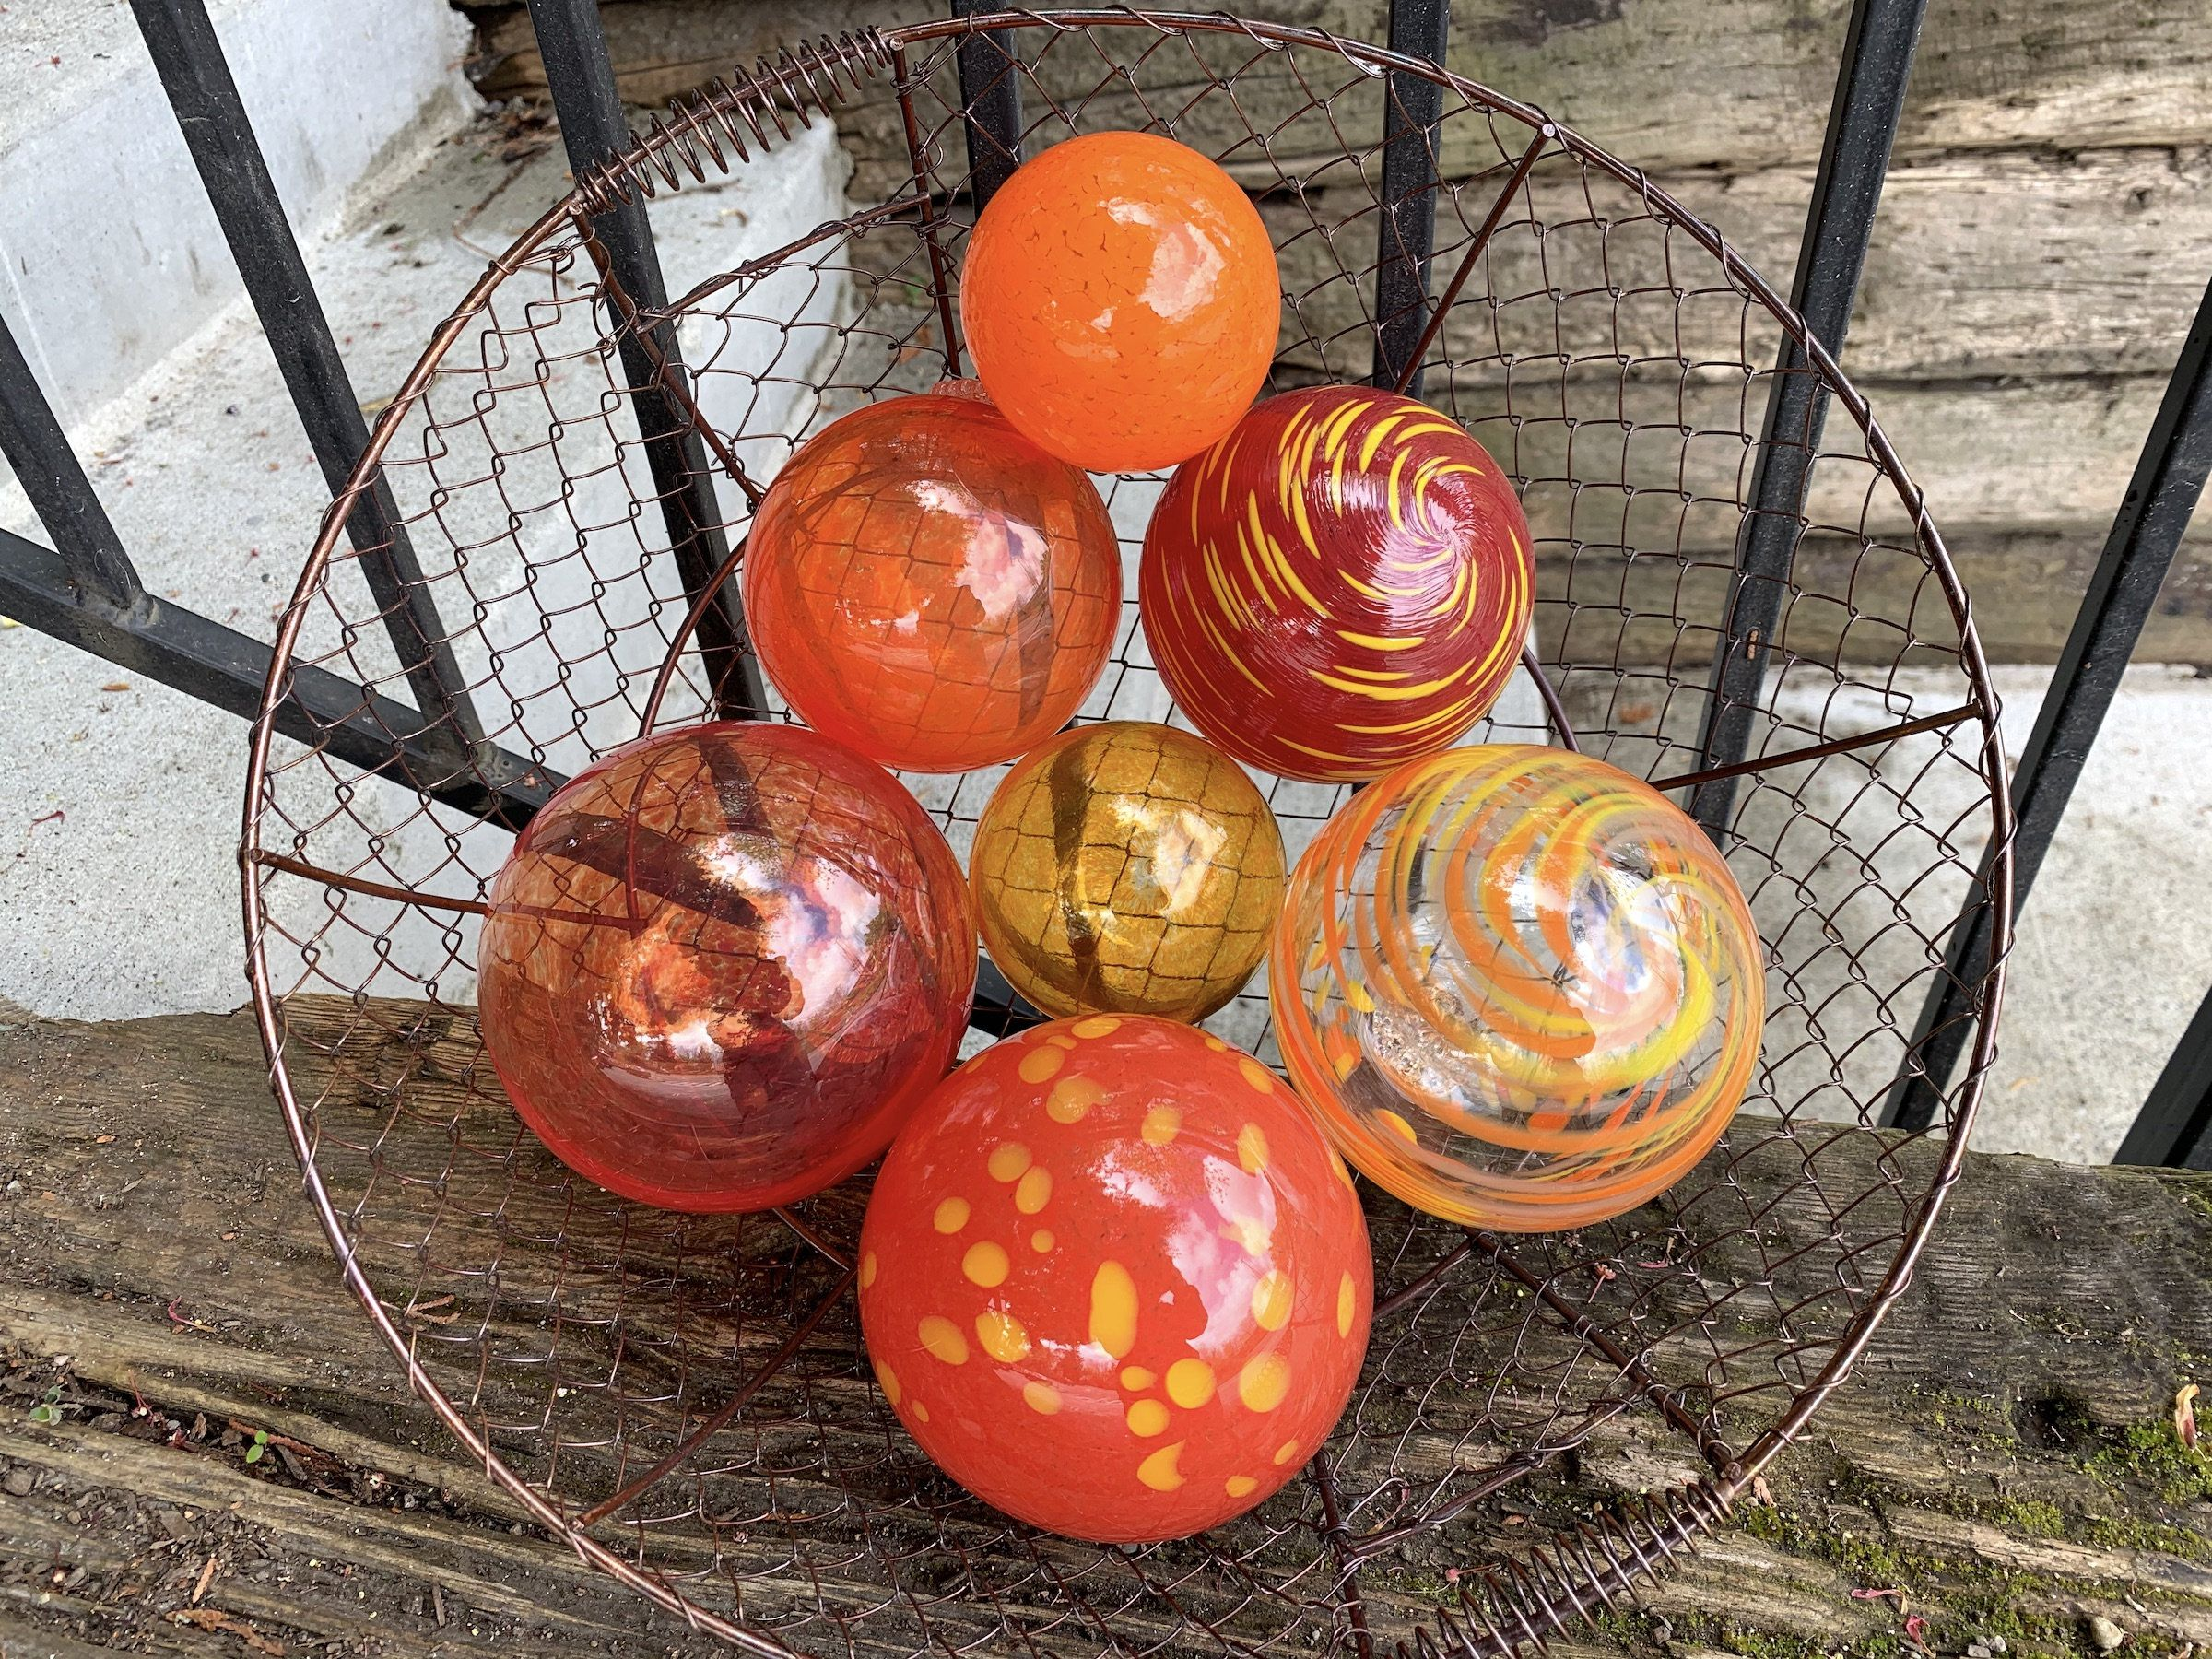 Reds And Oranges Set Of Seven Blown Glass Floats 3 To In 2020 Glass Floats Glass Blowing Garden Spheres